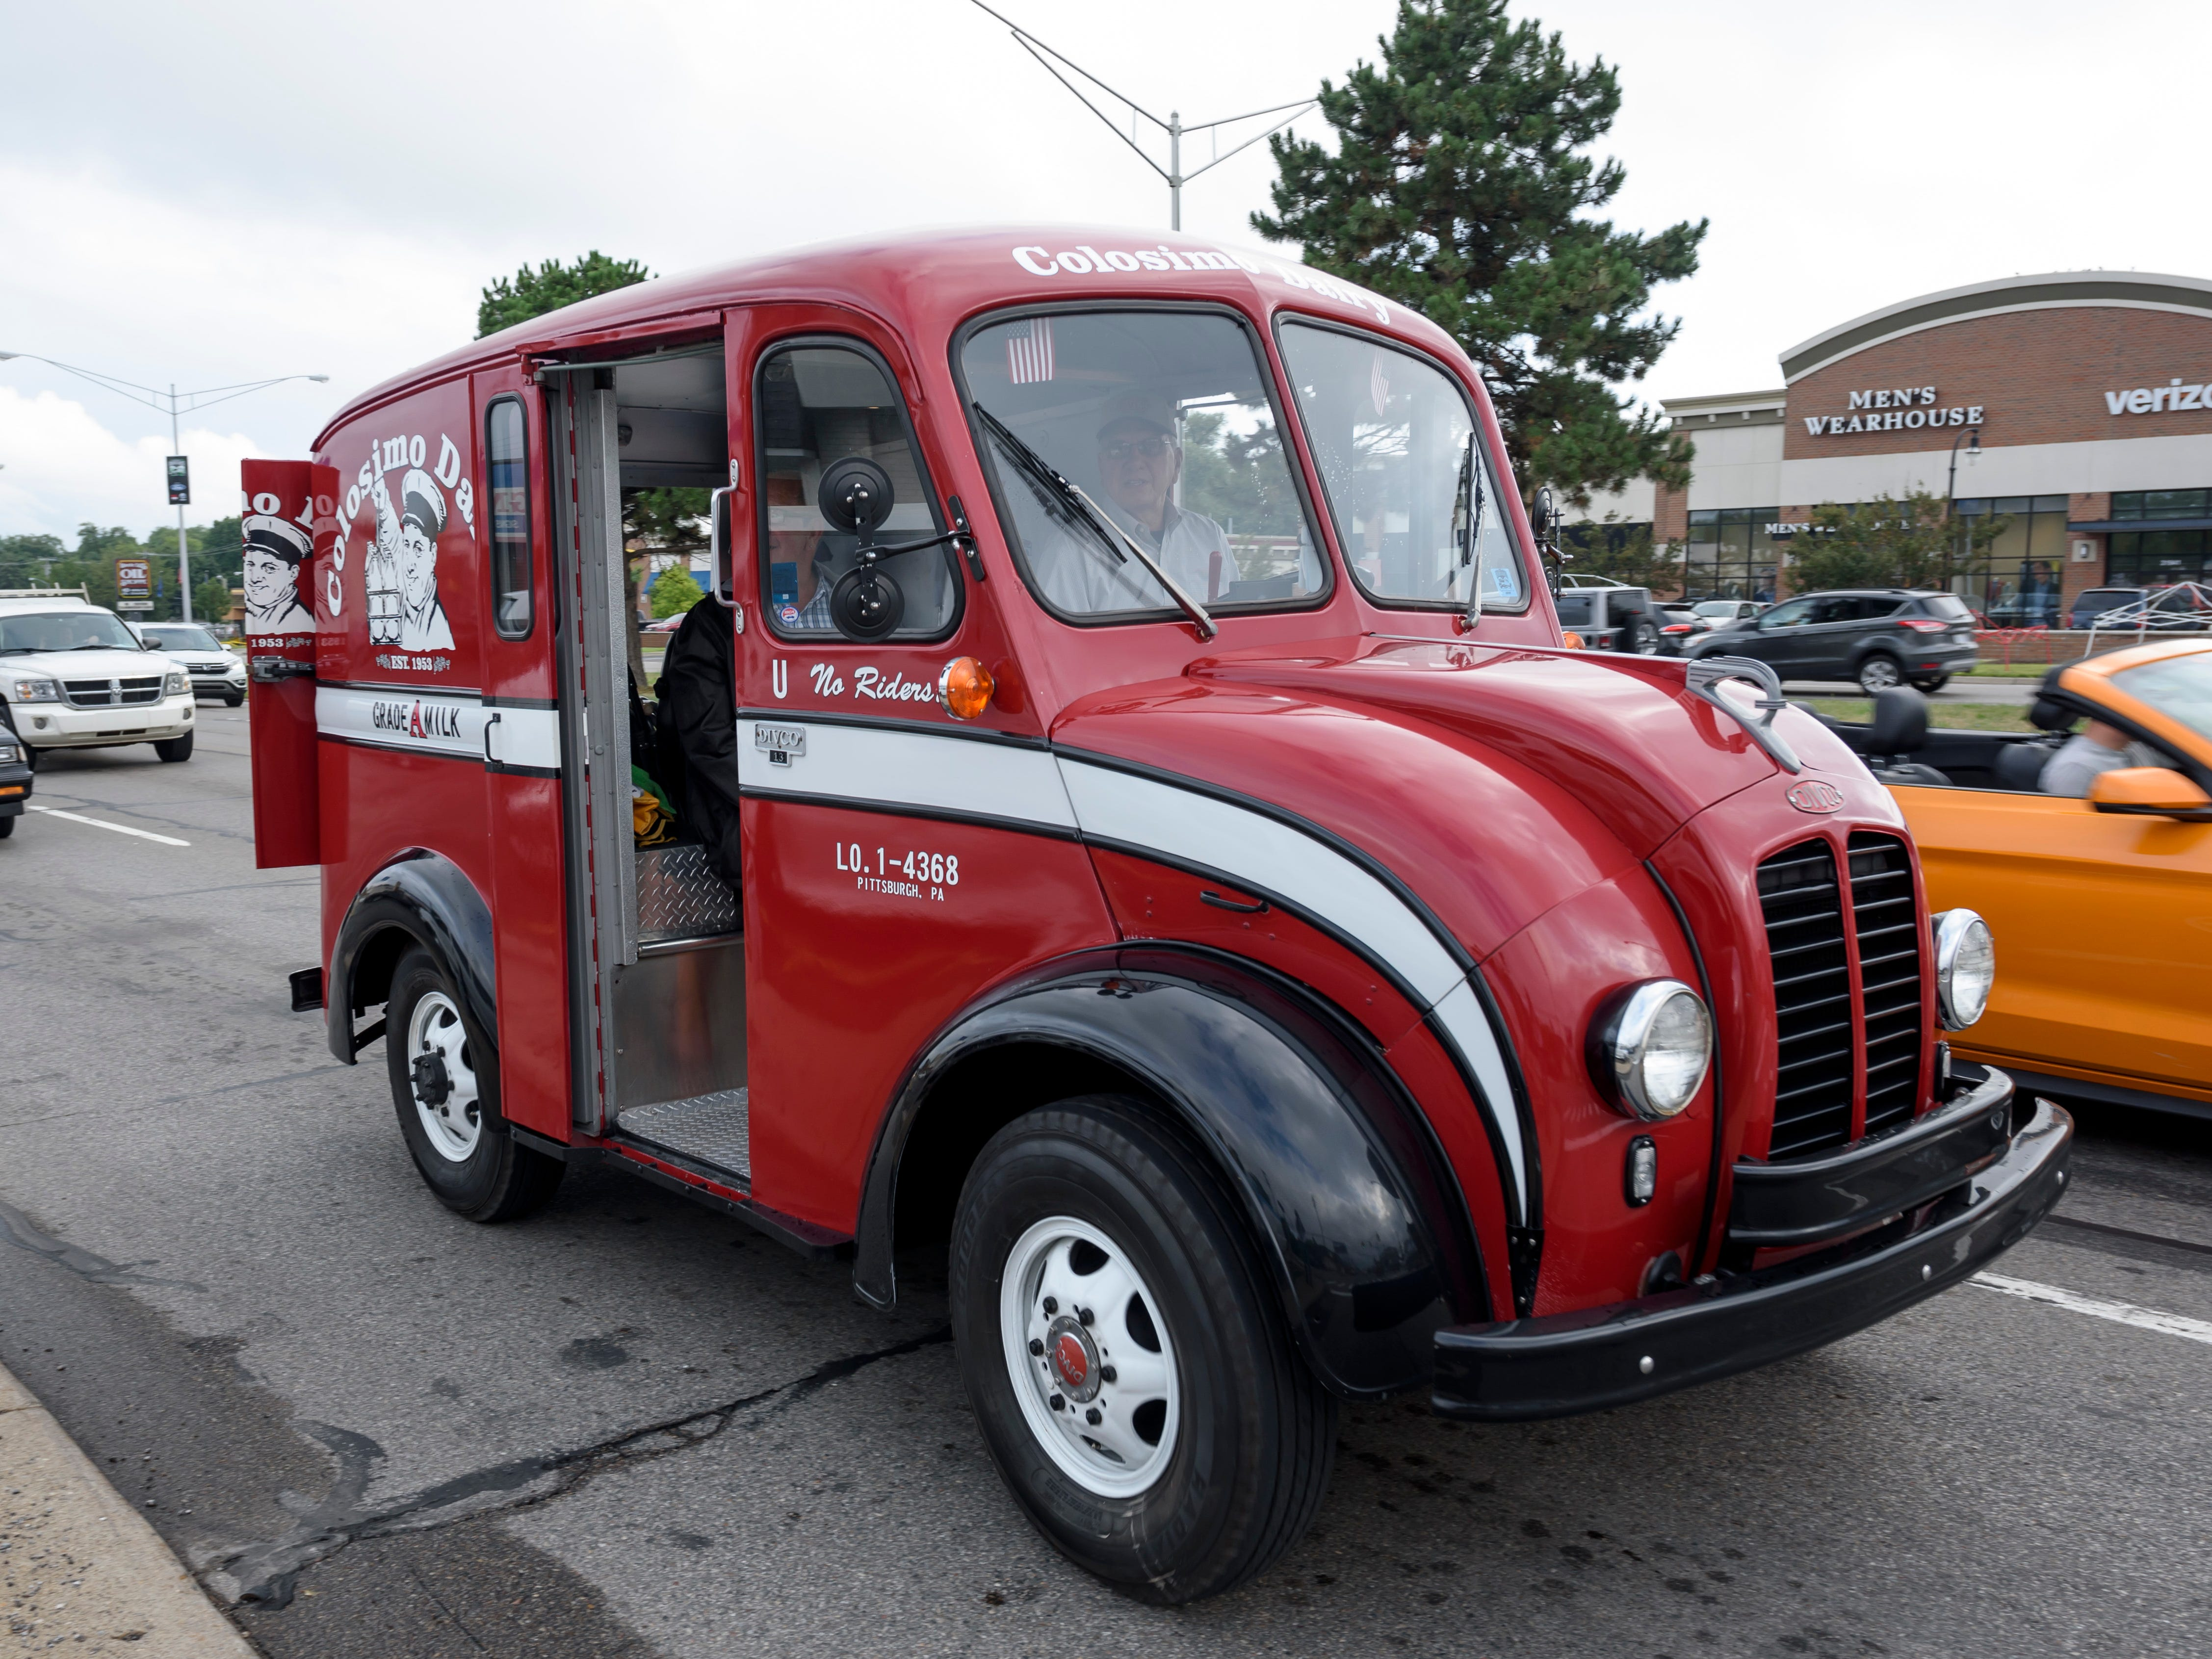 A 1957 DIVCO milk truck owned by Gary Colosimo of Pittsburgh makes its way down Woodward near Normandy in Royal Oak in preparation for the Dream Cruise, Aug. 16, 2018.